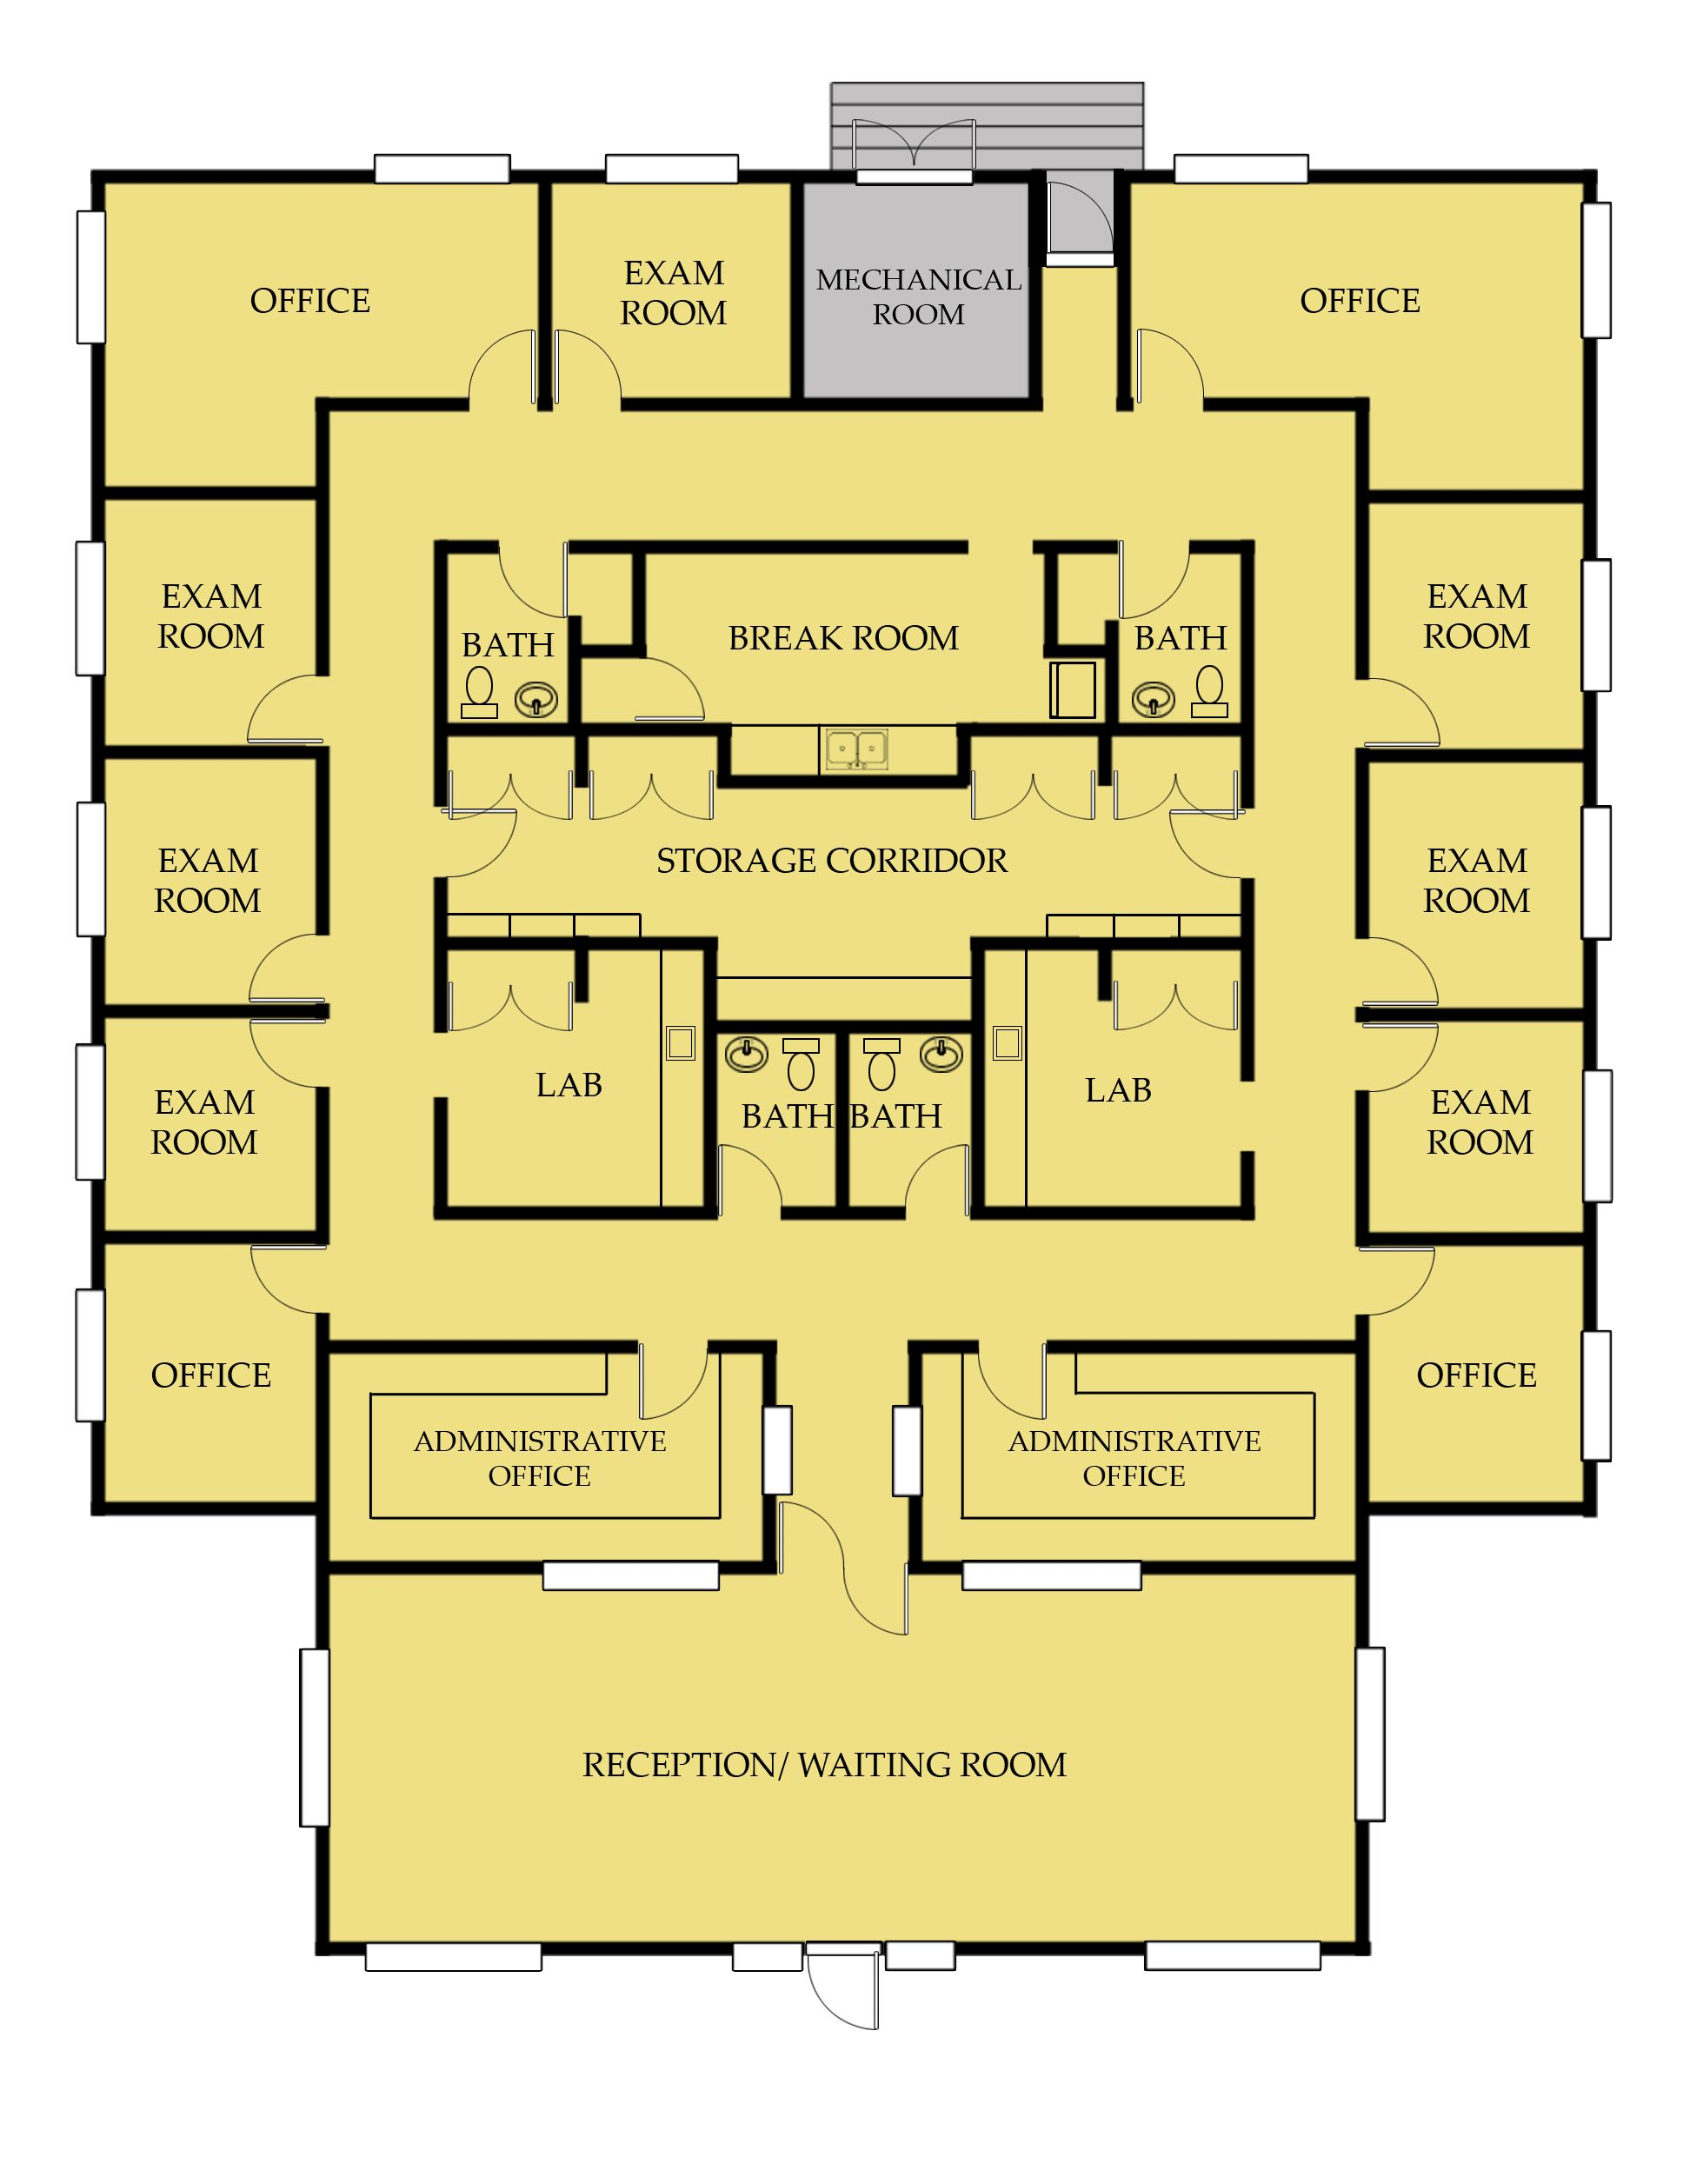 Medical Office Building Floor Plans Medical Pinterest Office Floor Plan Office Floor And